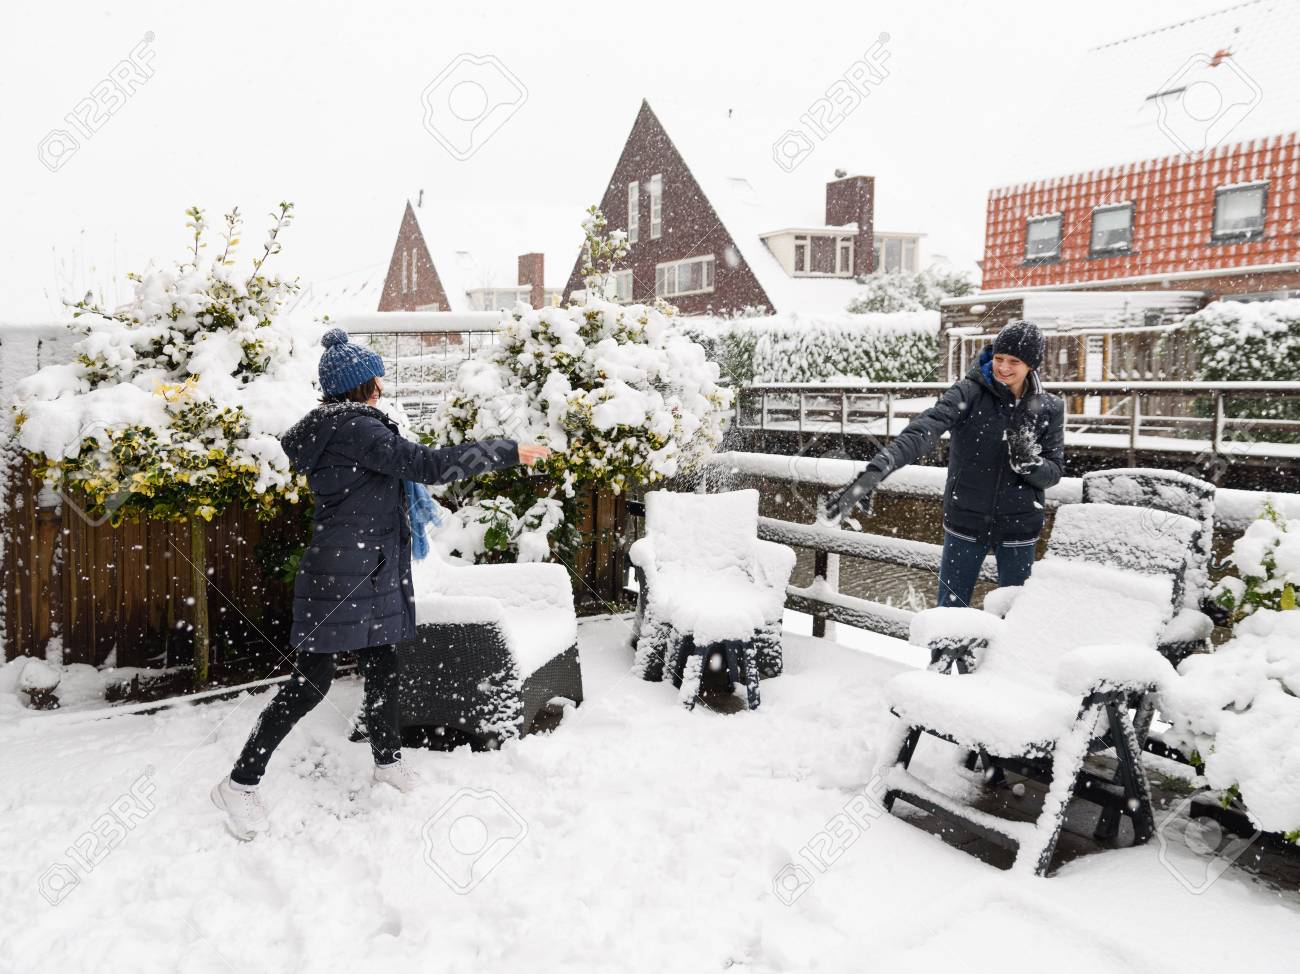 Two kids, children, playing snowballs in a backyard, first snow in late autumn. Banque d'images - 95408062